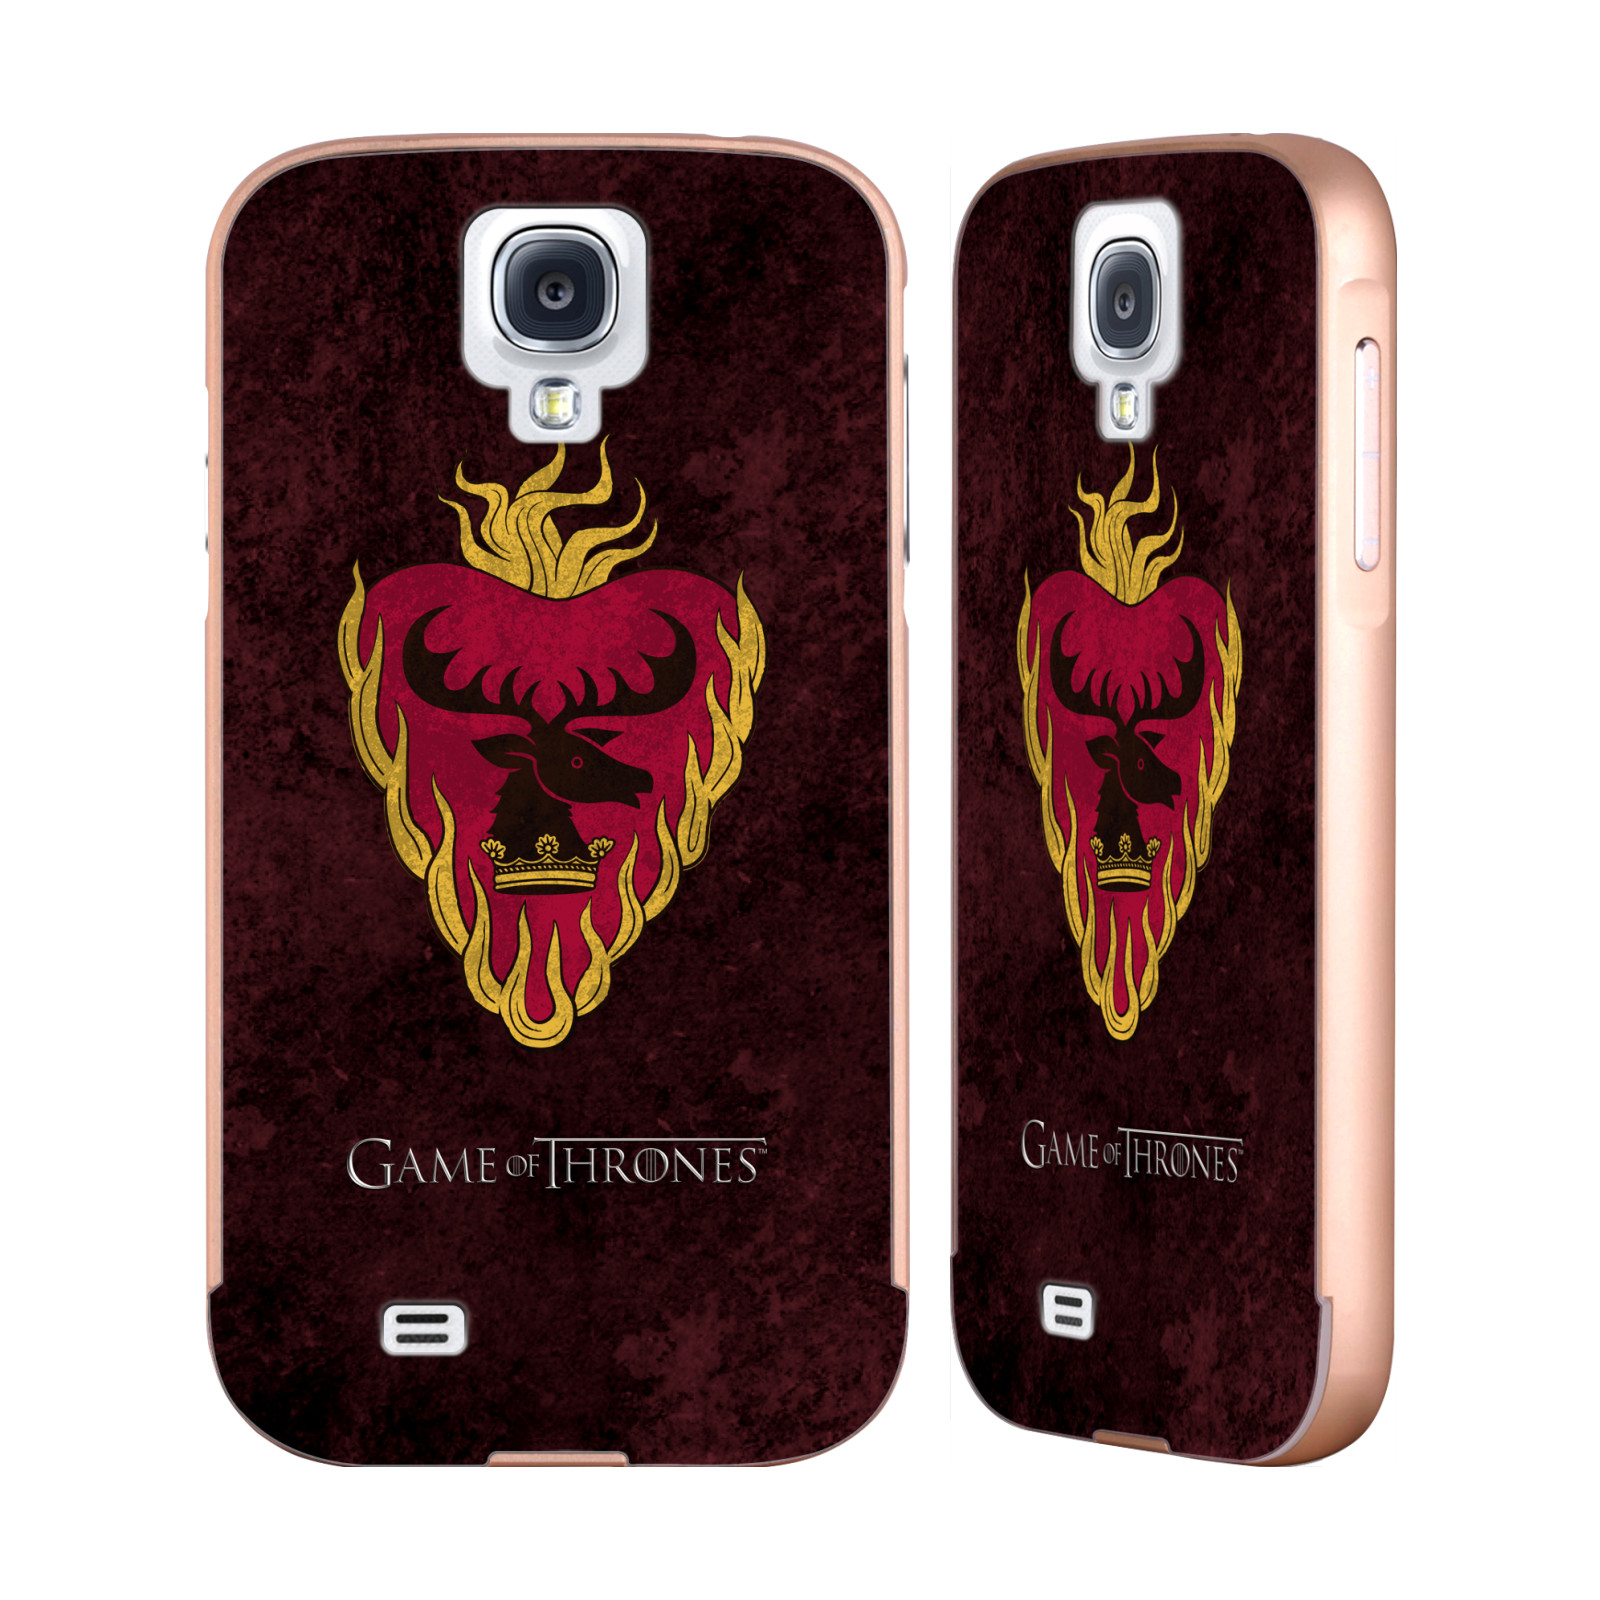 OFFICIAL HBO GAME OF THRONES DARK DISTRESSED SIGILS GOLD ALUMINIUM BUMPER SLIDER CASE FOR SAMSUNG PHONES